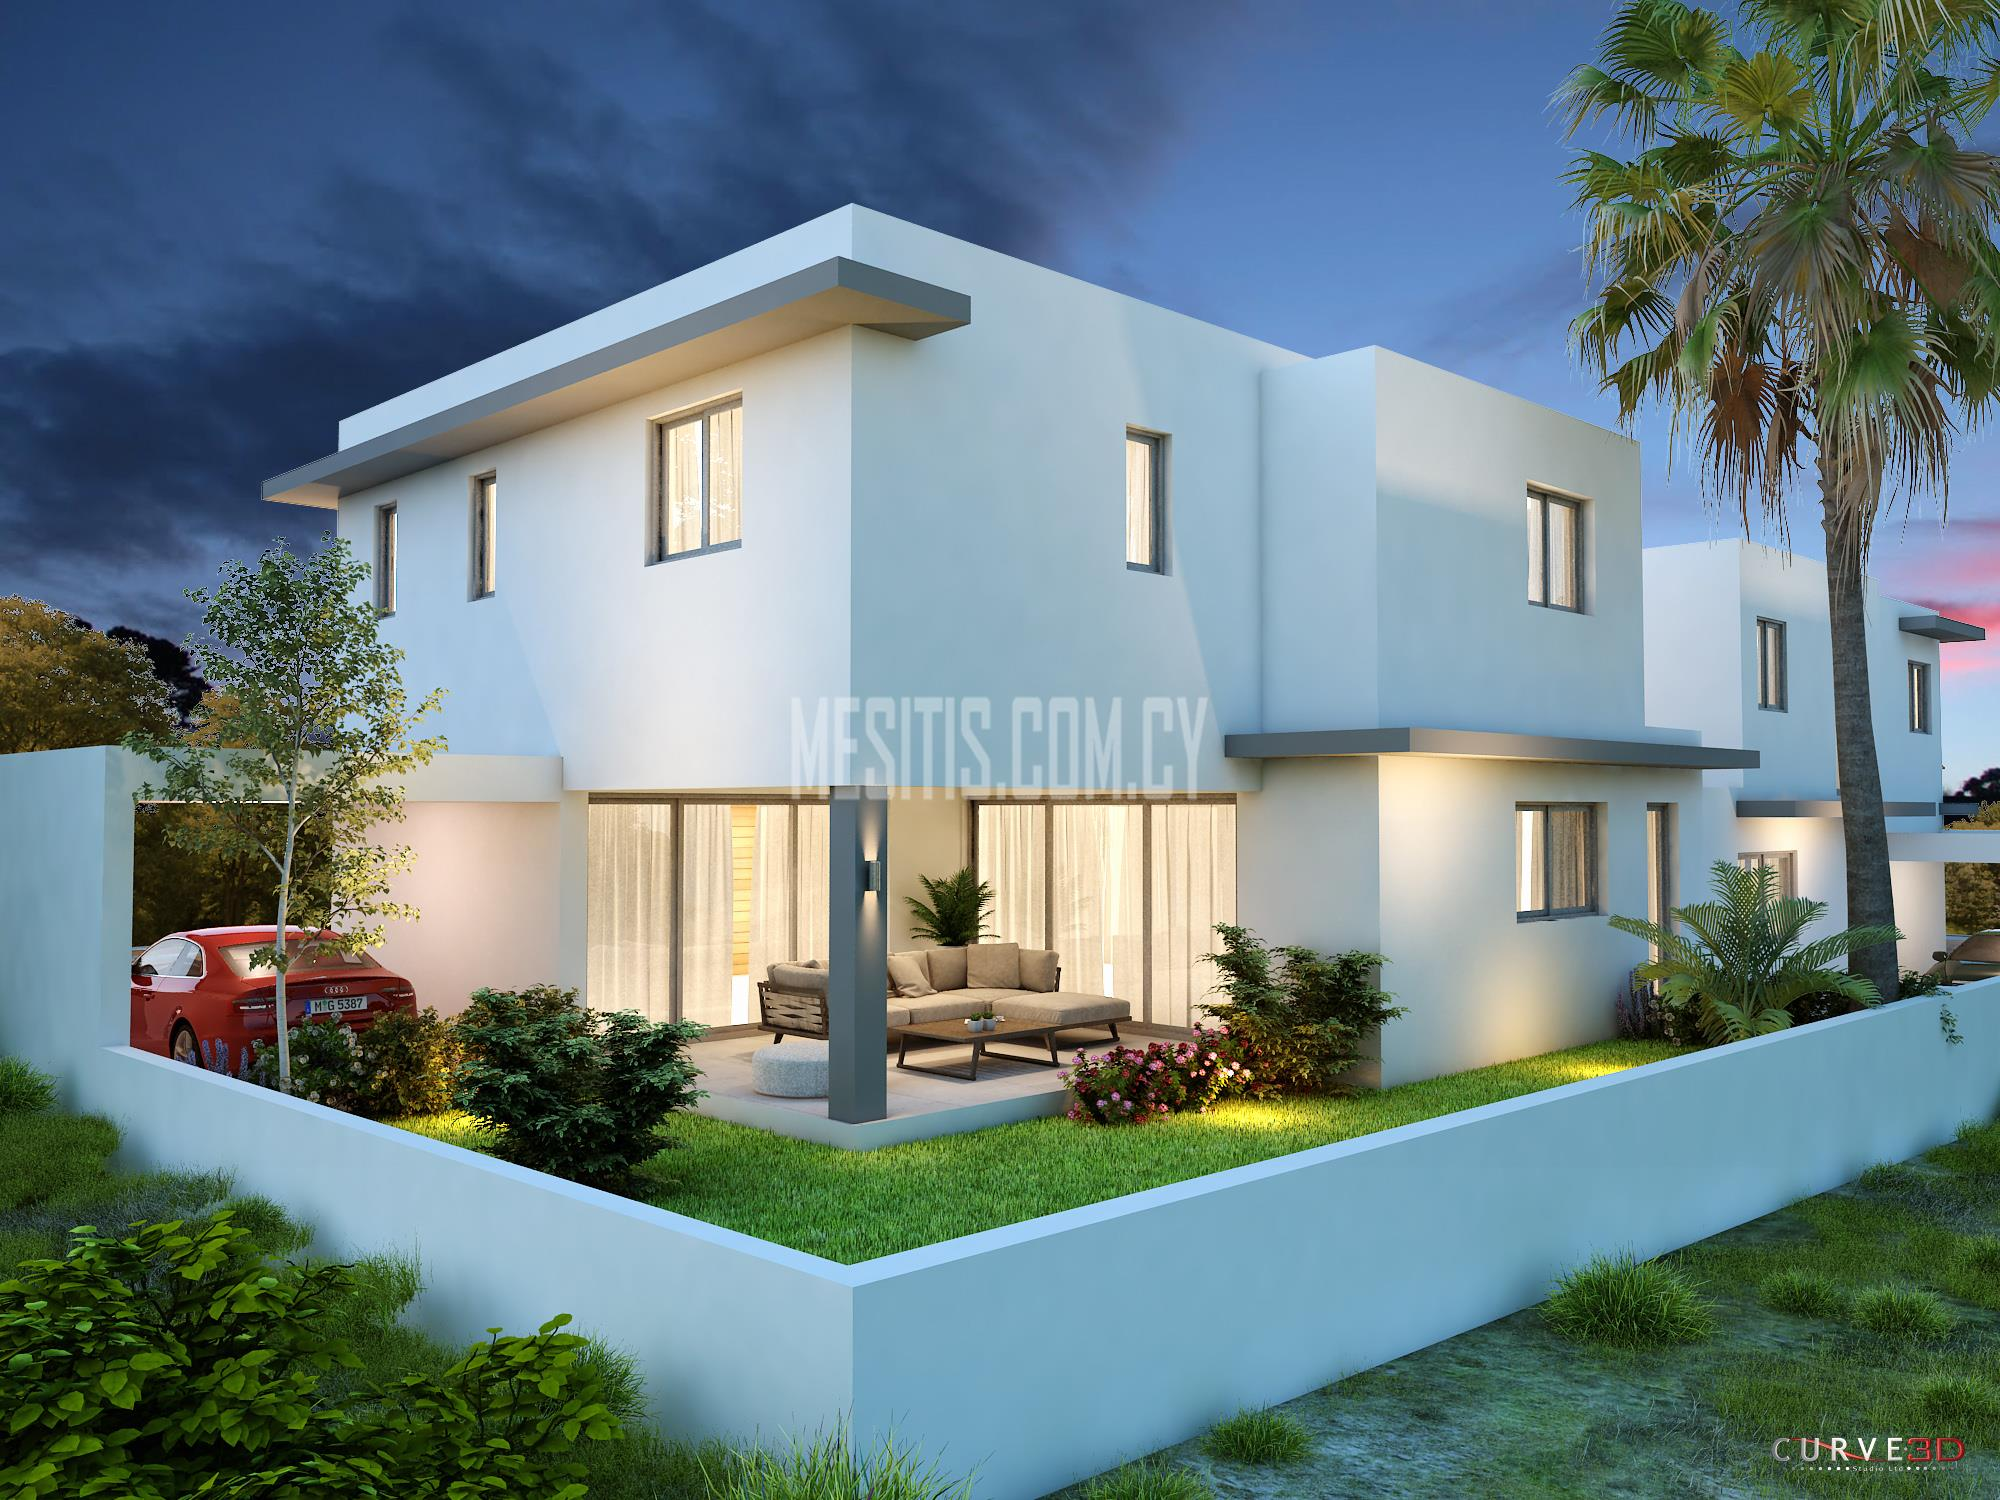 Fantastic modern under construction 4 bedroom houses for sale in kalithea